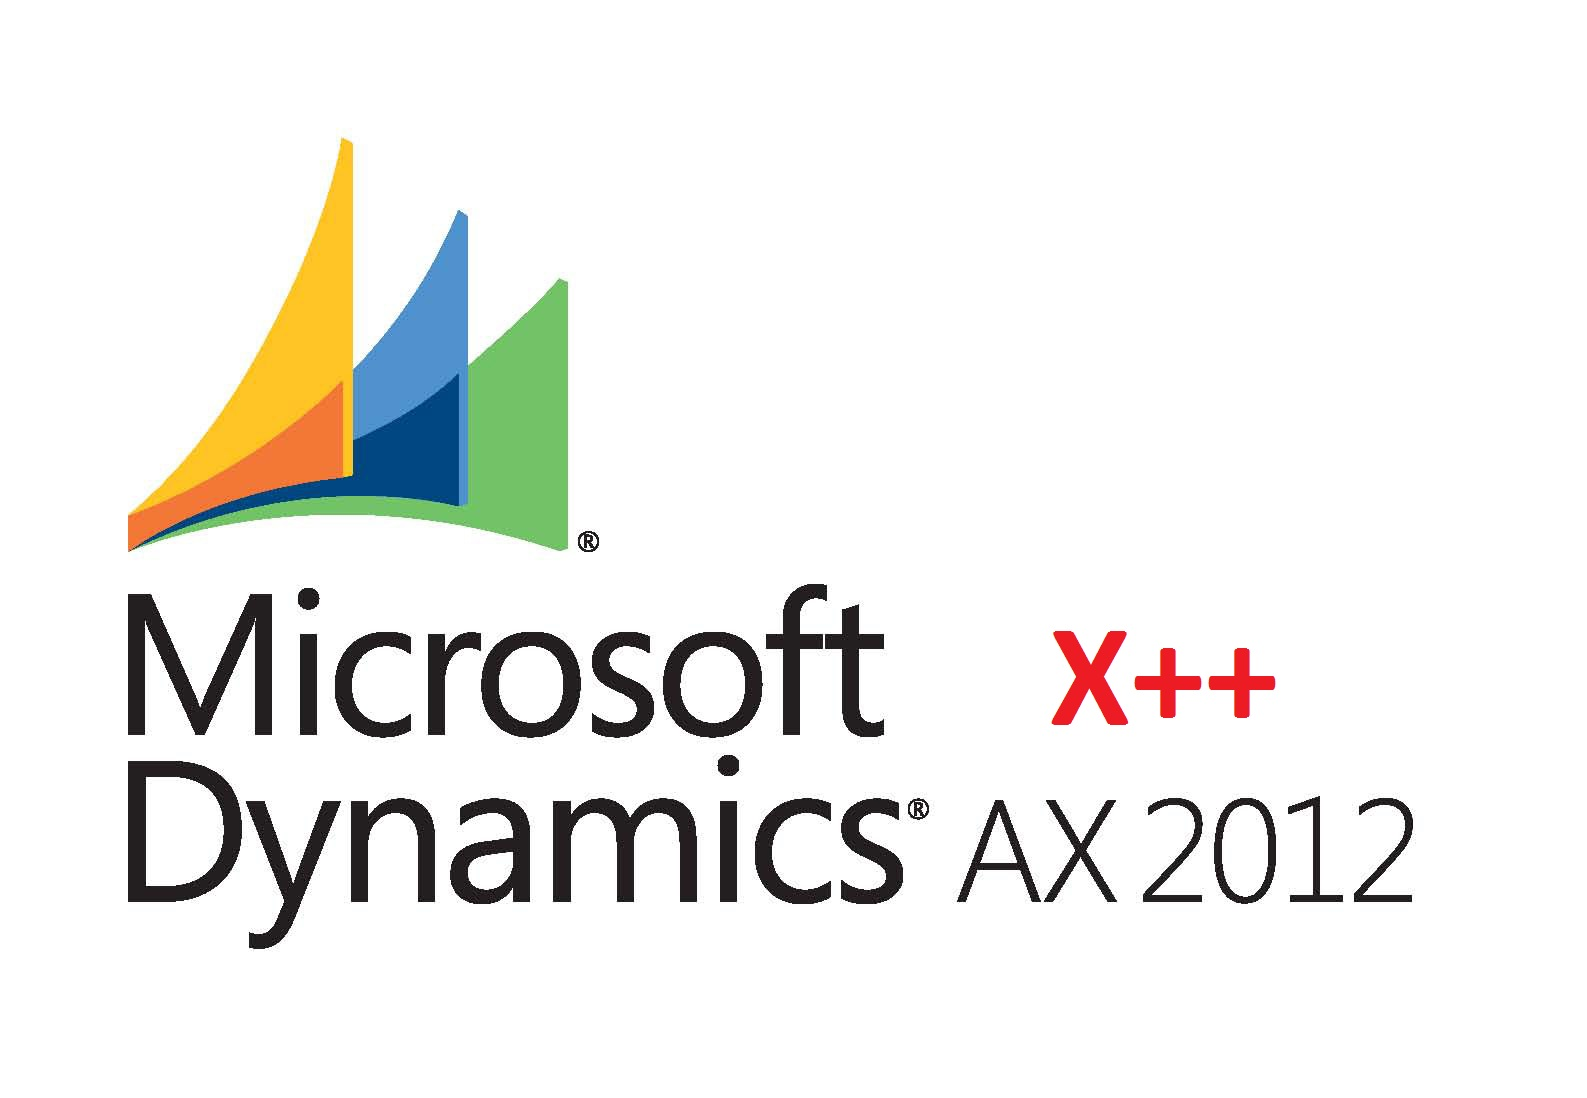 How to Configure Document Management in MS Dynamics AX 2012